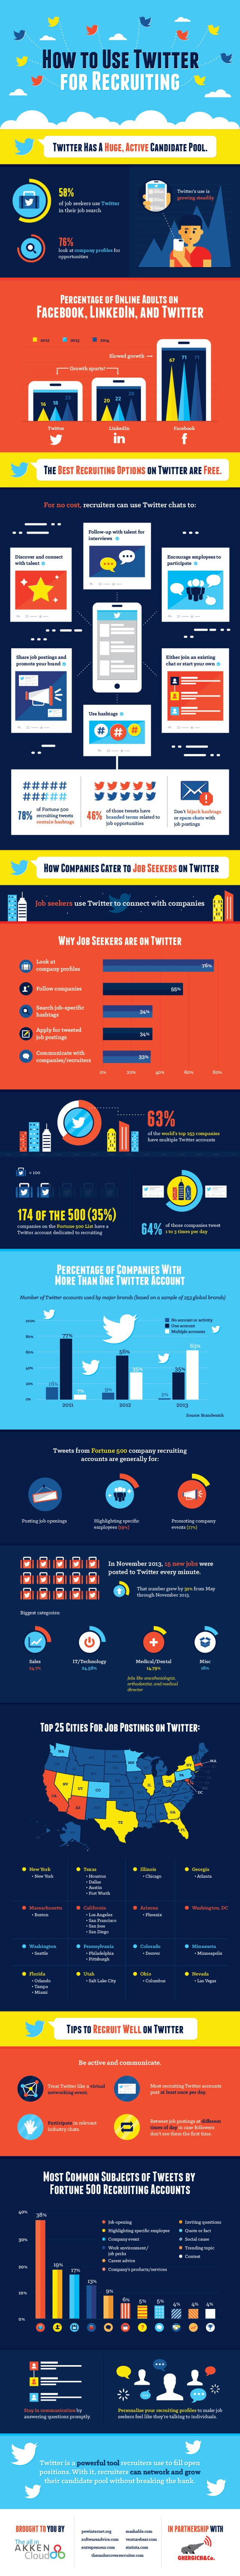 how-to-use-twitter-for-recruiting_558d698b9a54f